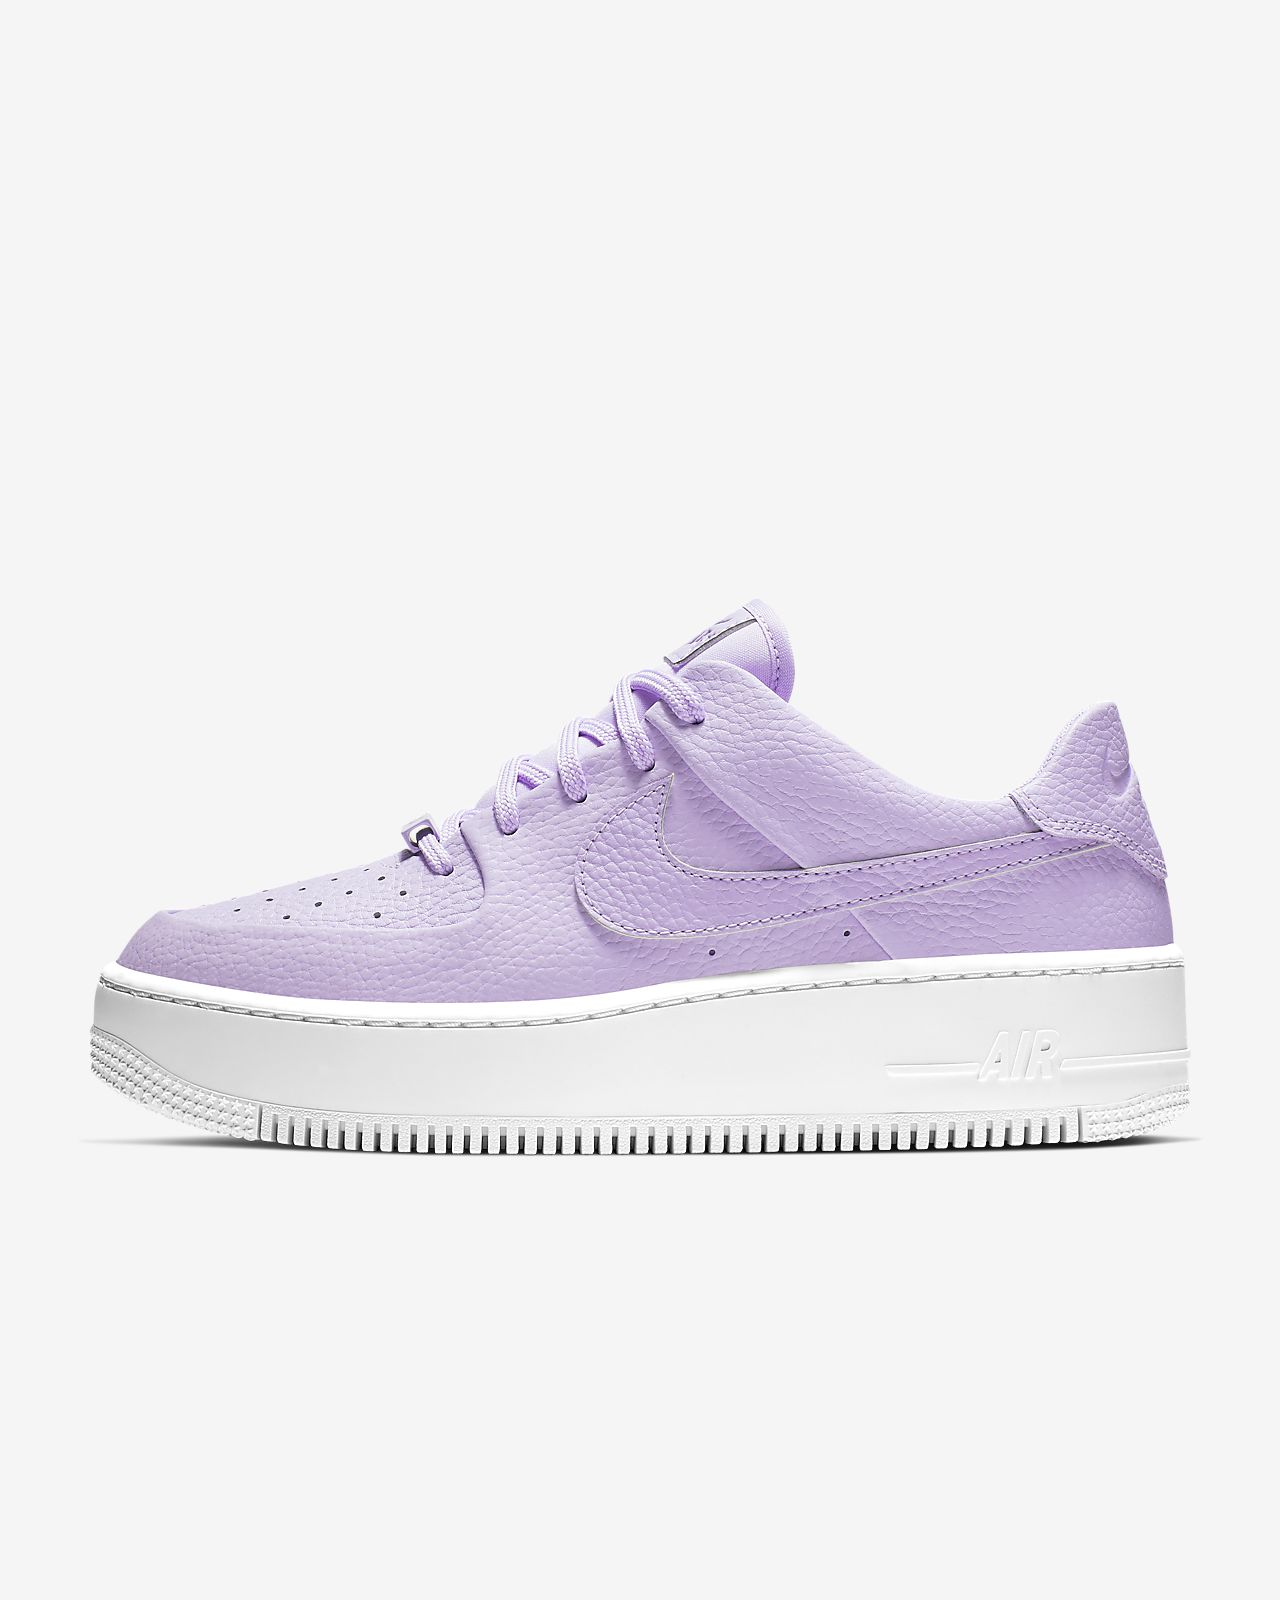 official photos 8a5ef 08760 ... Chaussure Nike Air Force 1 Sage Low pour Femme